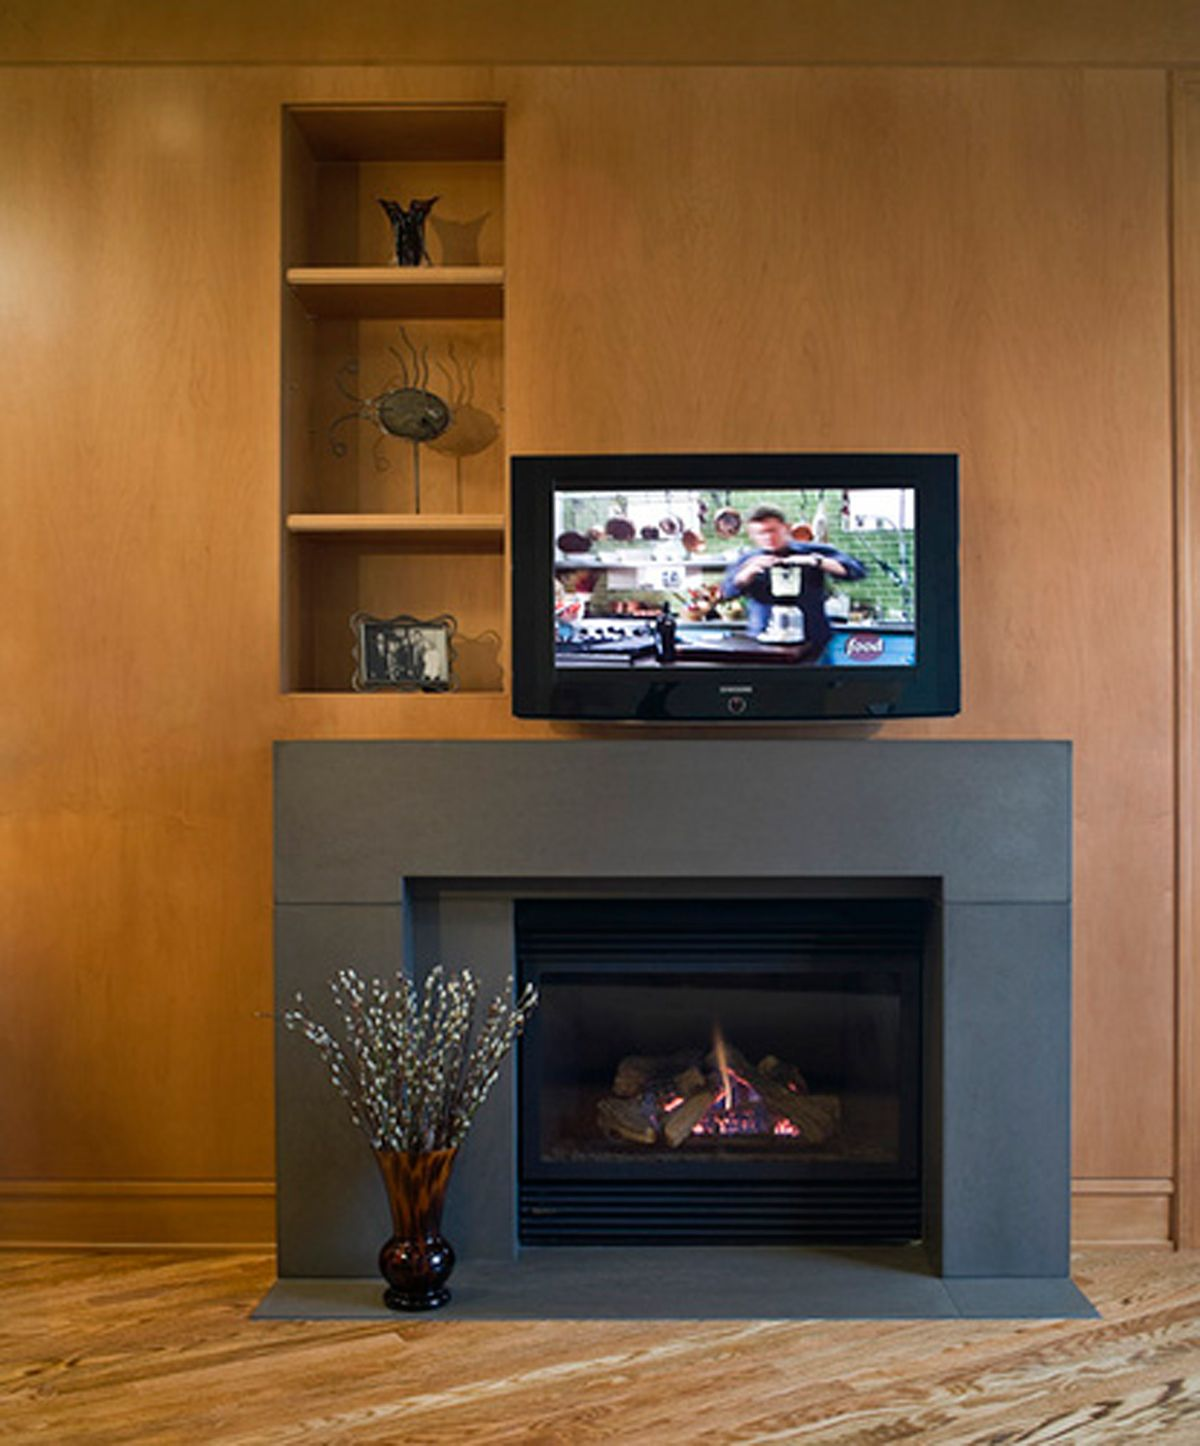 Fireplace designs contemporary gas fireplace designs Fireplace design ideas